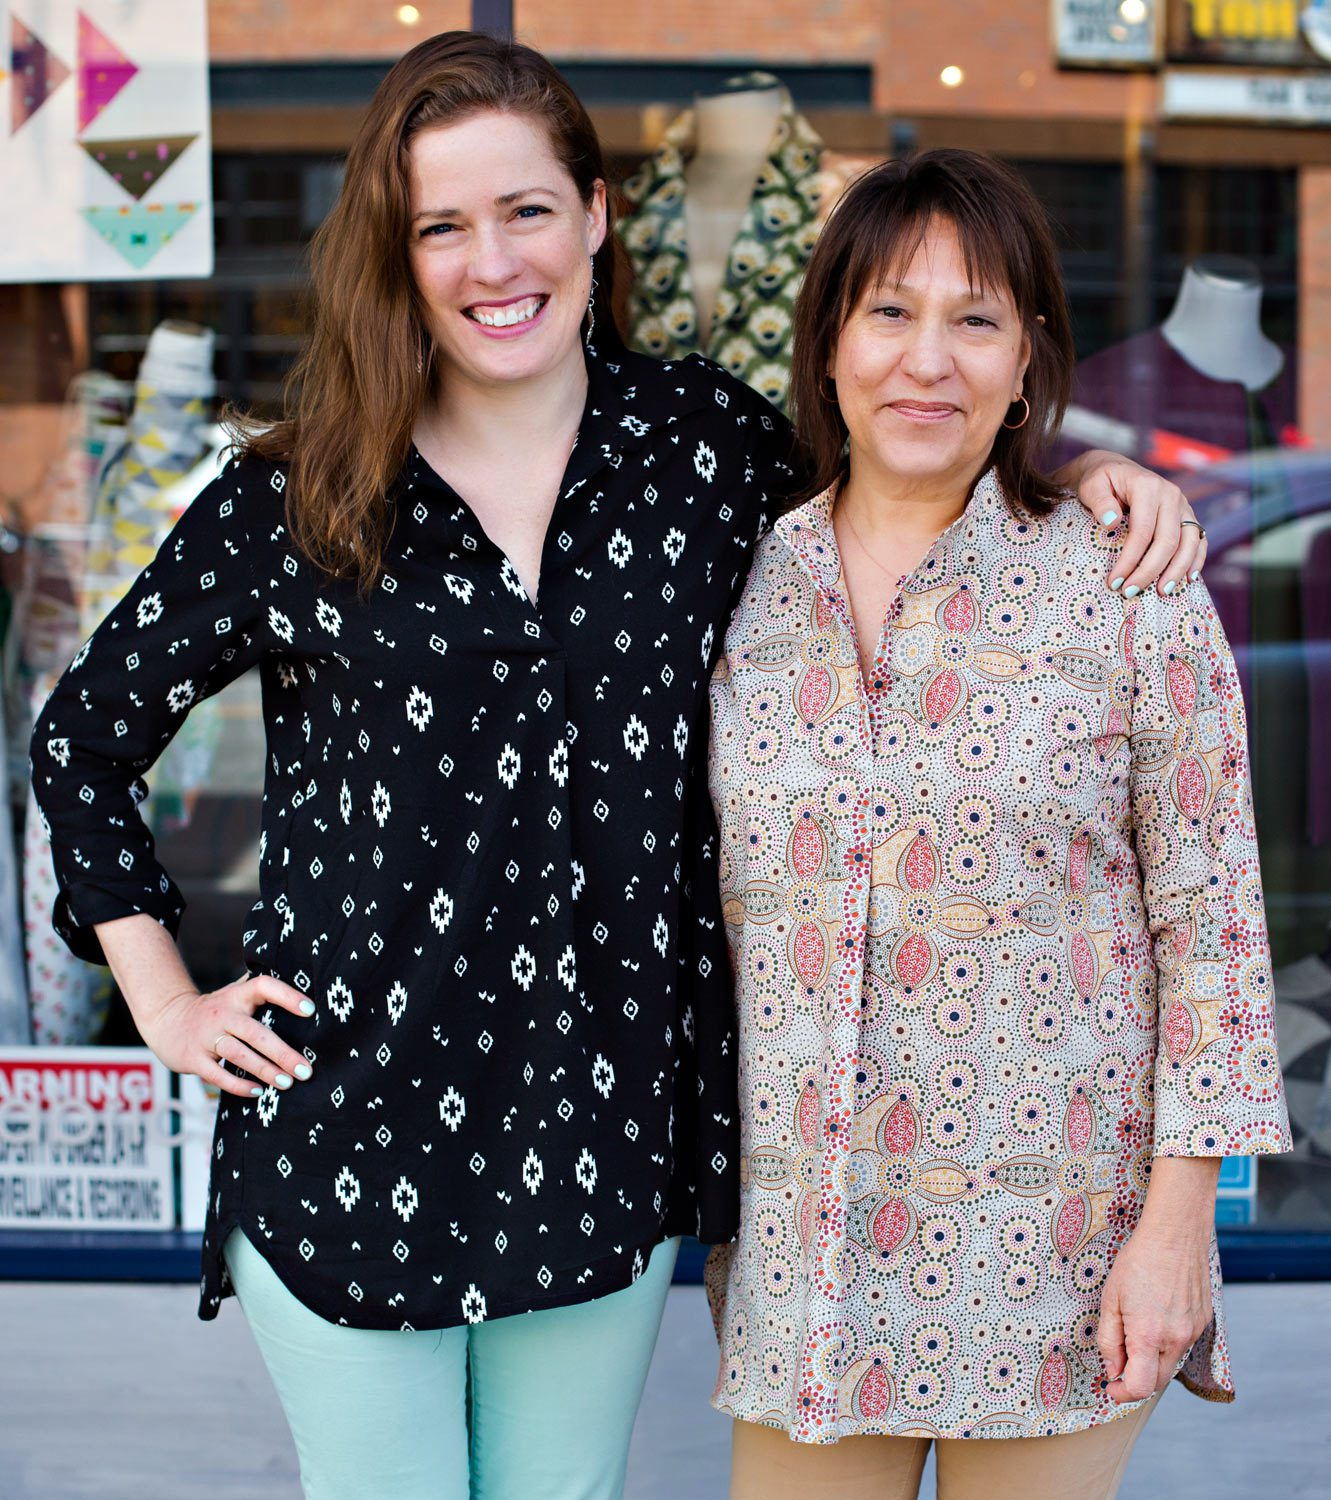 Jane and Bonnie in two different versions of the Leisl + Co. Gallery Tunic.